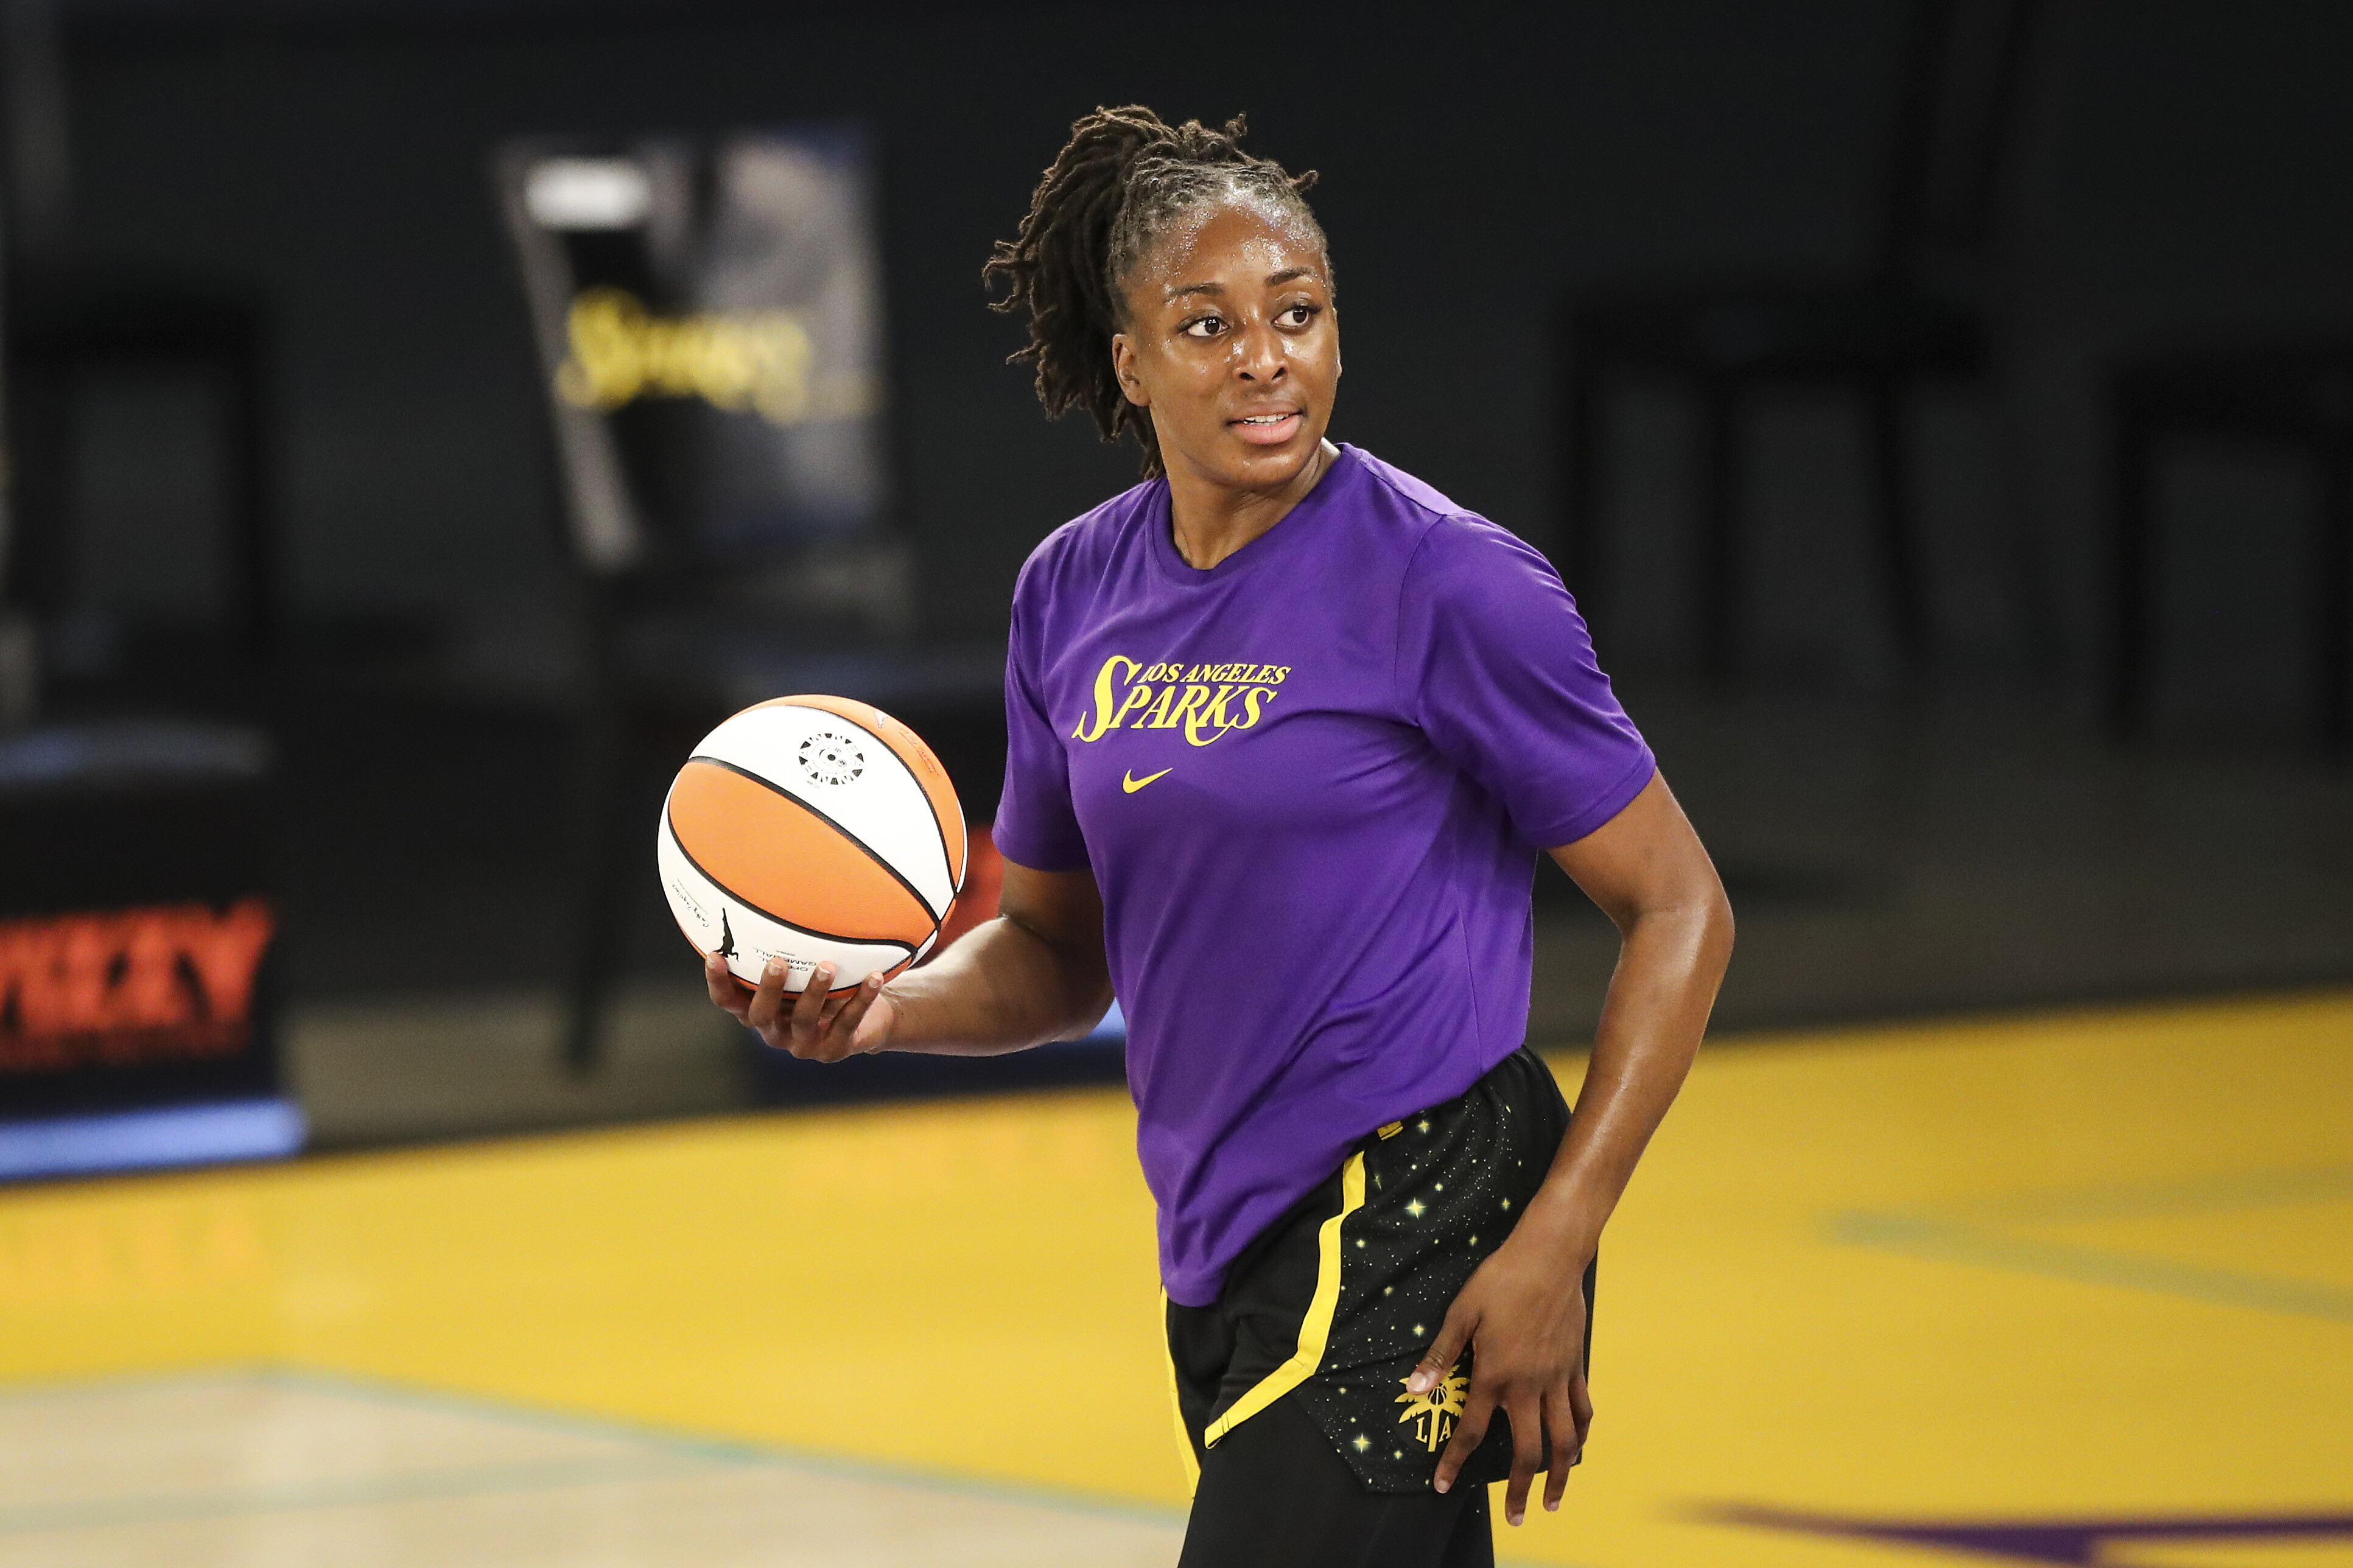 WNBA players Nneka Ogwumike and Elizabeth Williams won't play for Nigeria at Olympics after appeal rejected